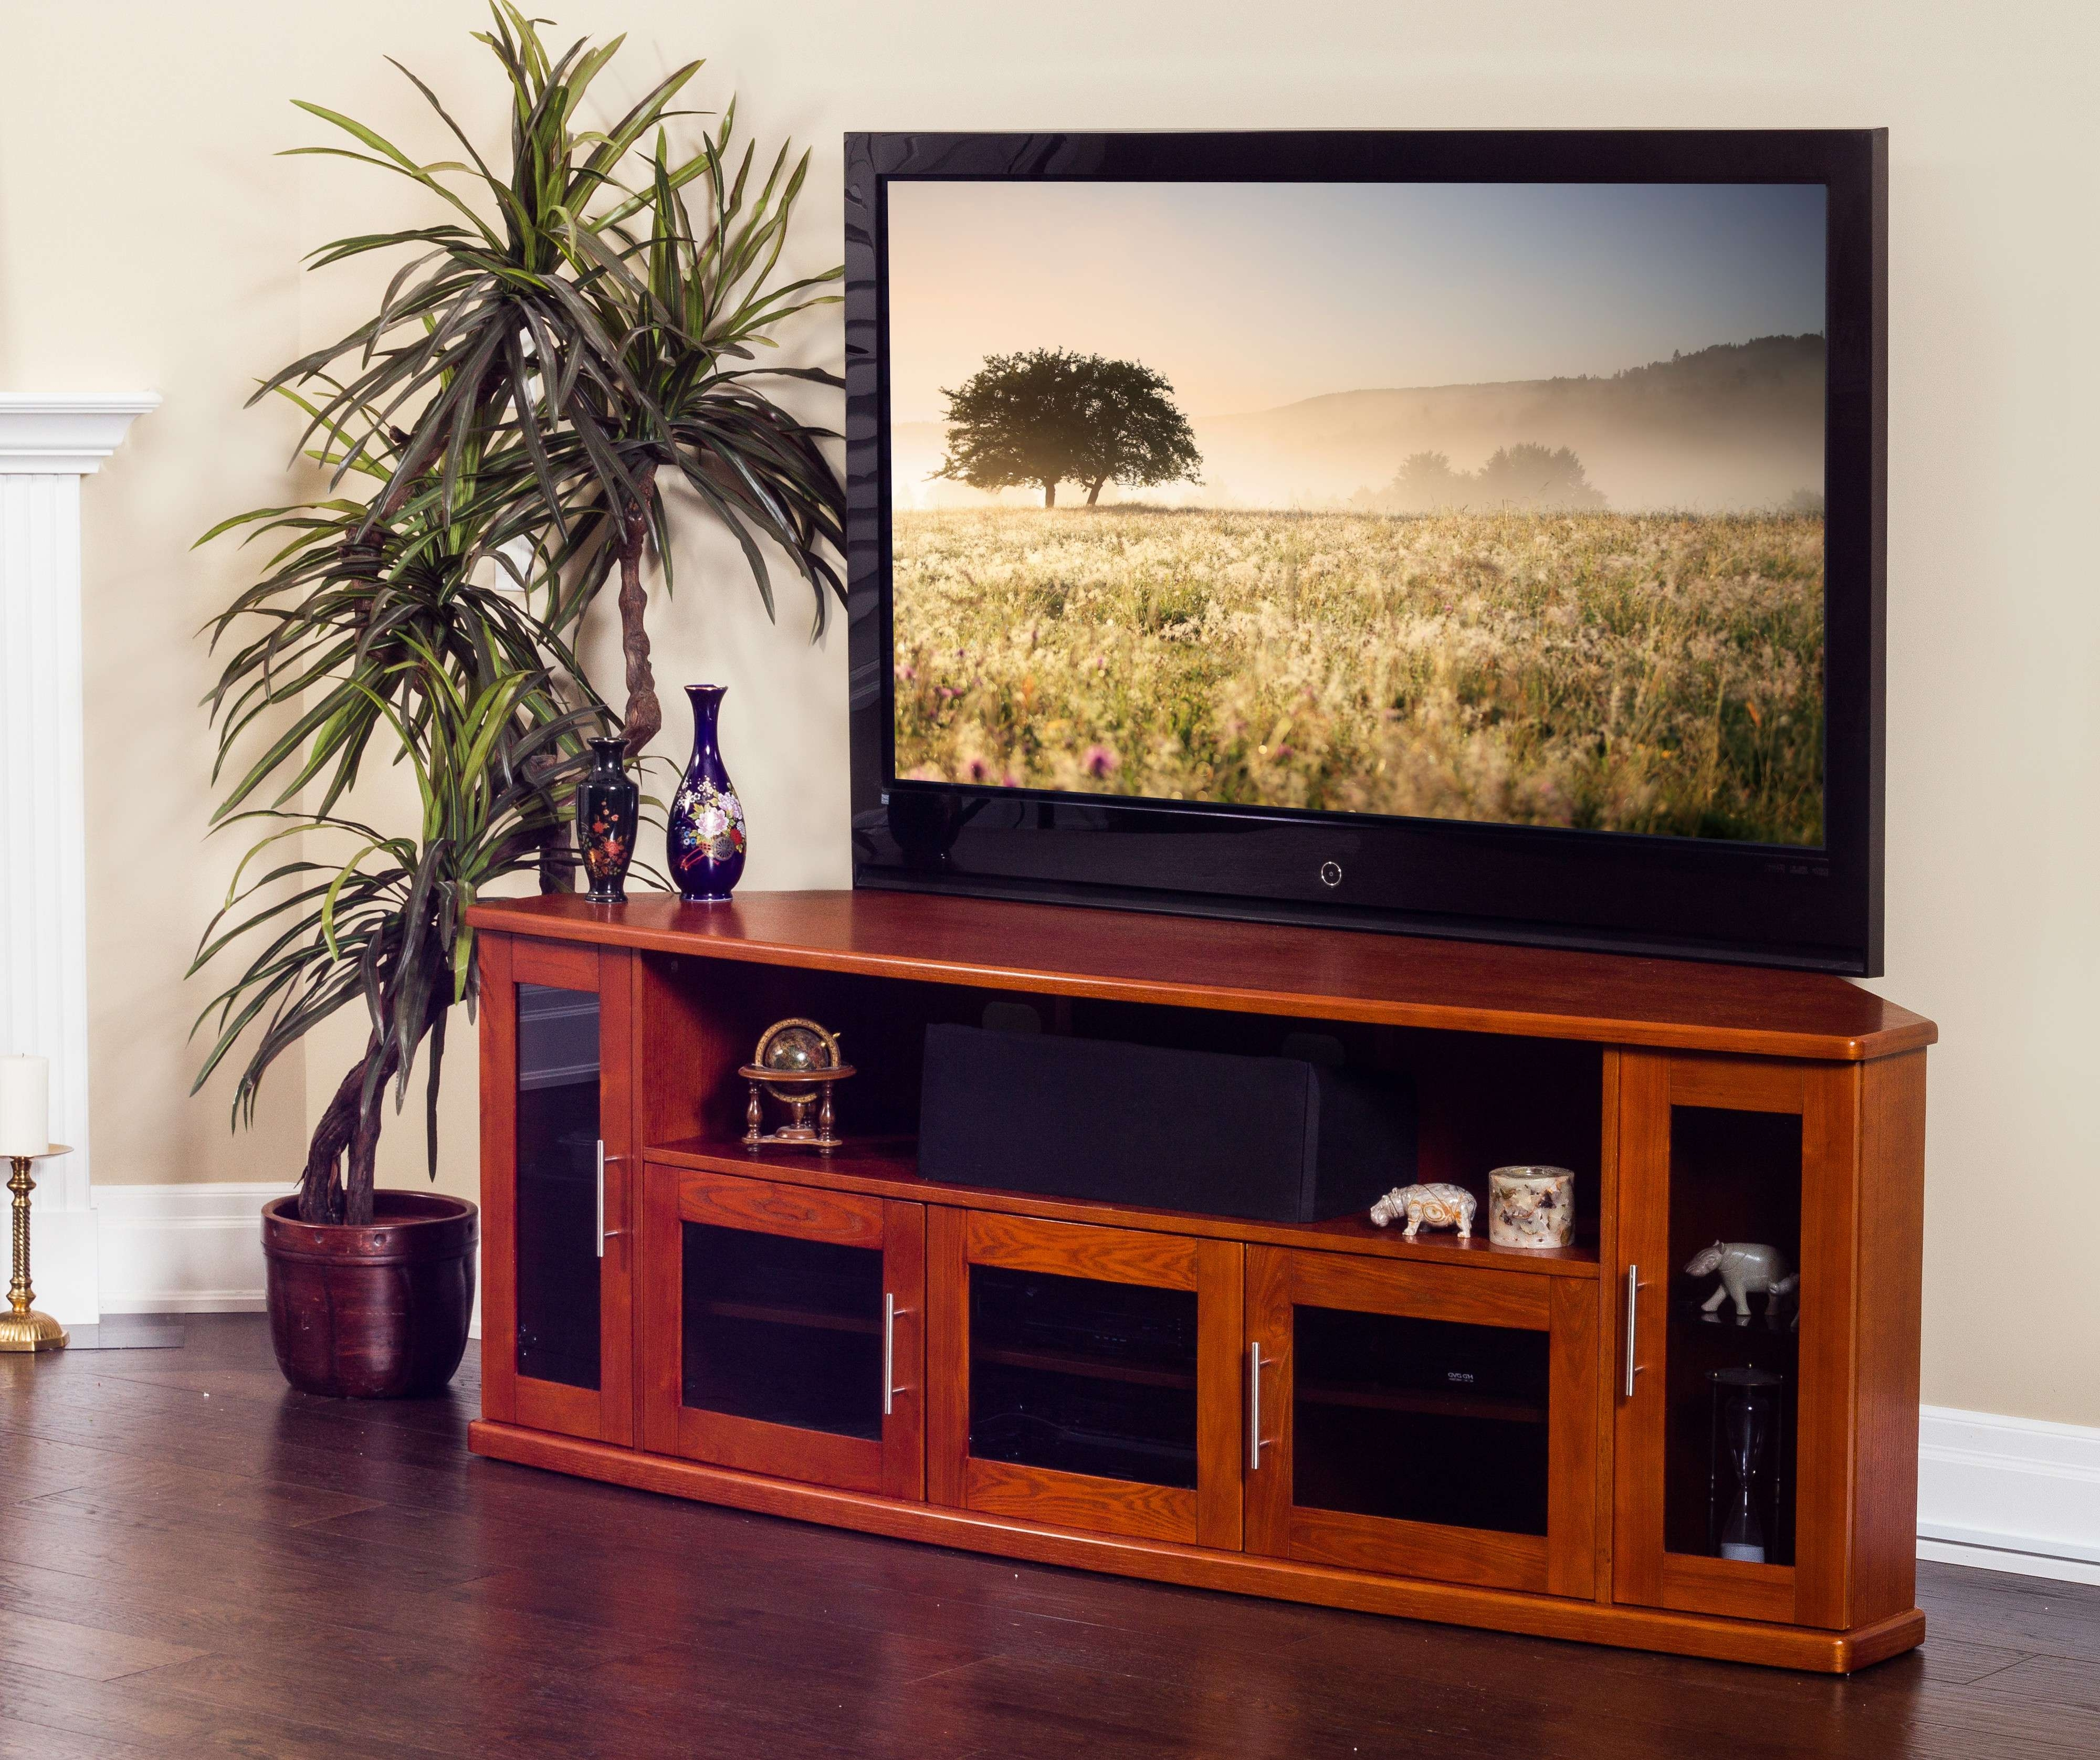 Buy Newport 80 Tv Stand Online – Plateaucorp With Regard To 80 Inch Tv Stands (View 6 of 15)